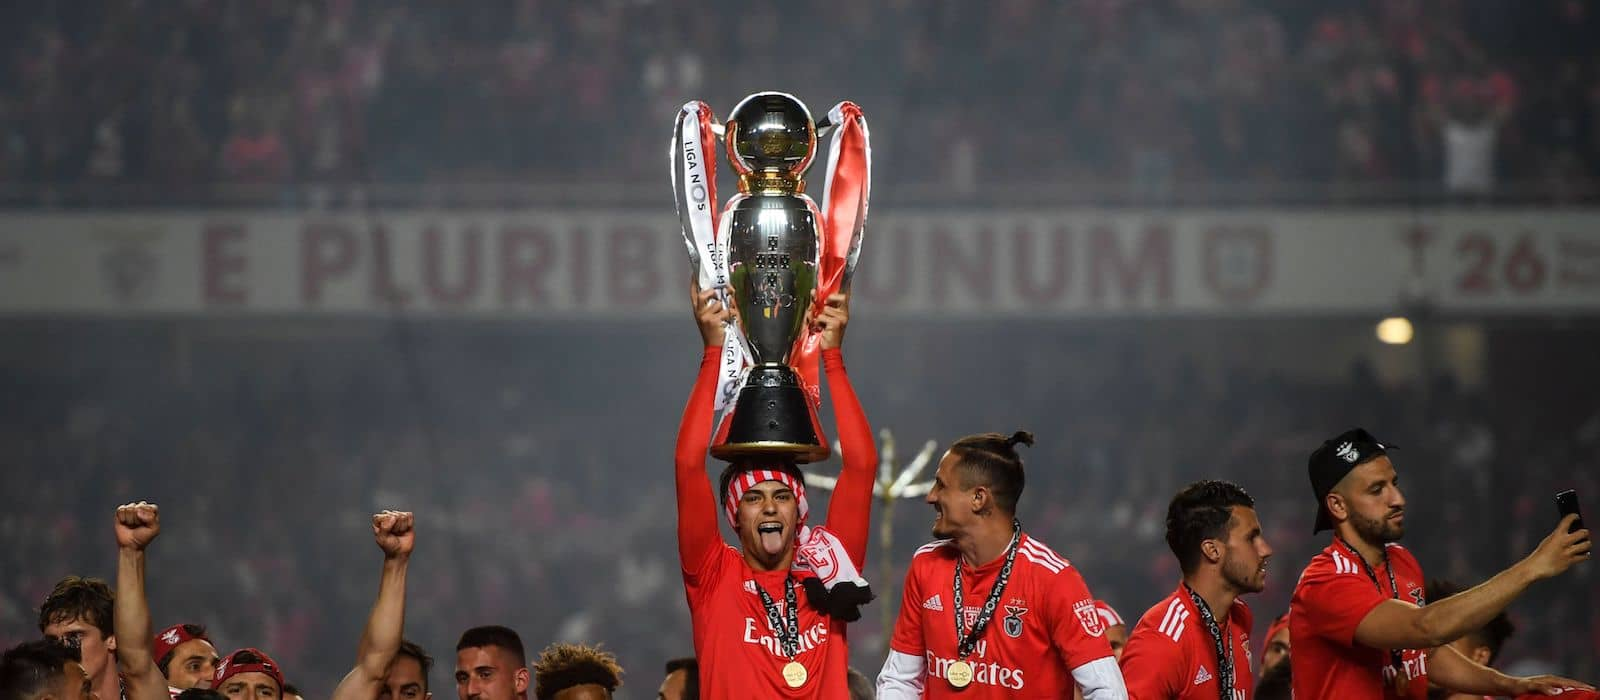 Benfica president confirms the only way Joao Felix can leave